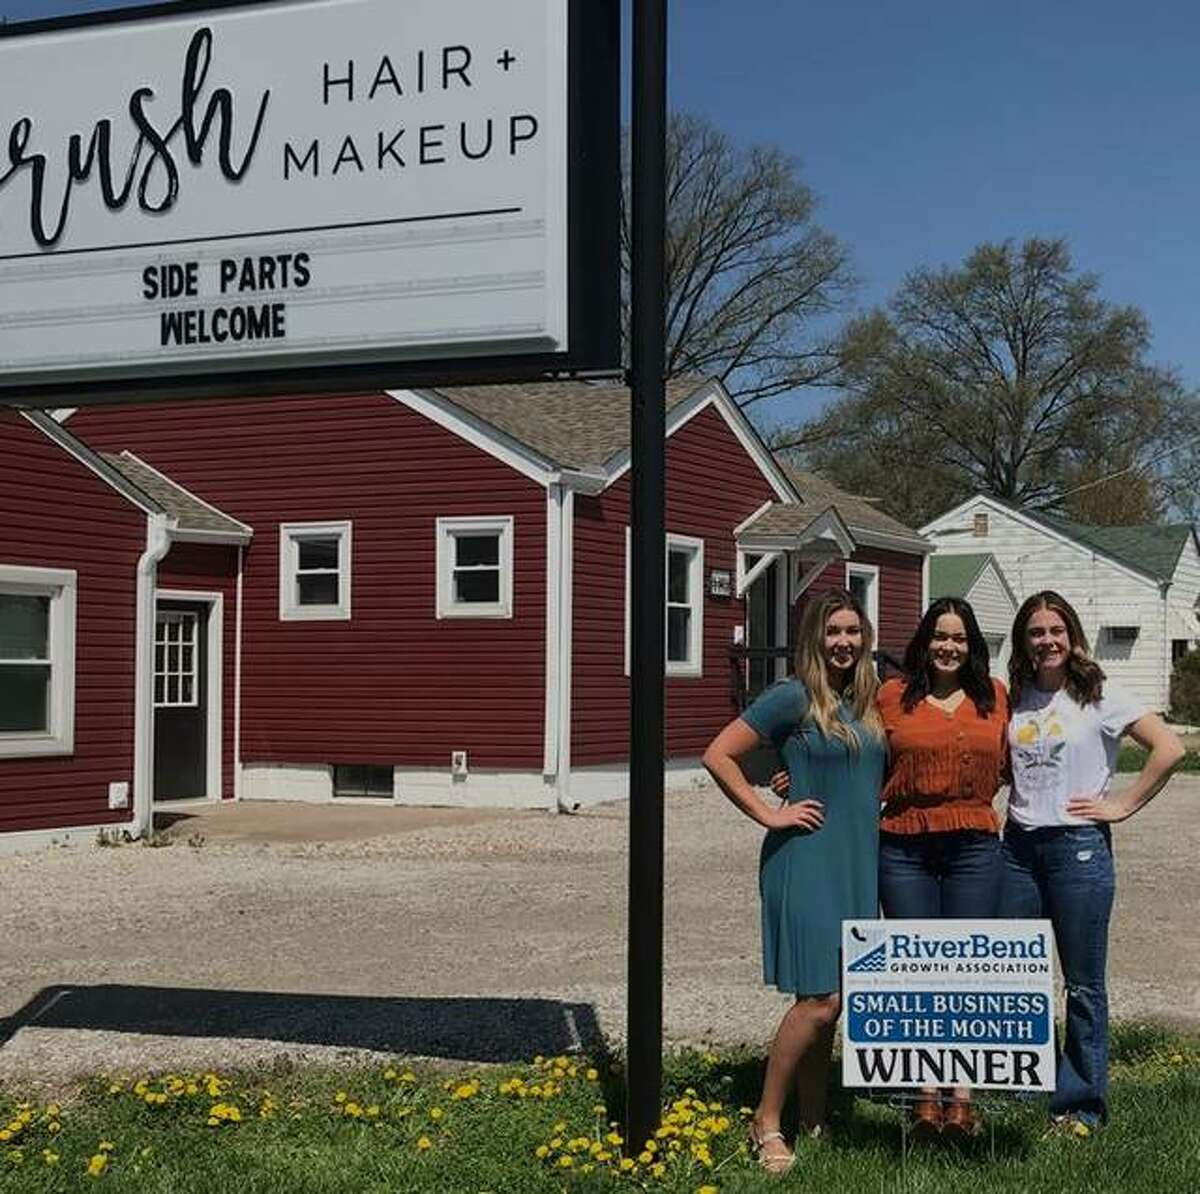 FIEL - The RiverBend Growth Association has named BRUSH Hair + Makeup as its Small Business of the Month. Pictured from left are Kristen Kanon, Liz Campbell and Jamie McLaughlin. Not pictured are Jessica Grace and Sarah Zimmerman.